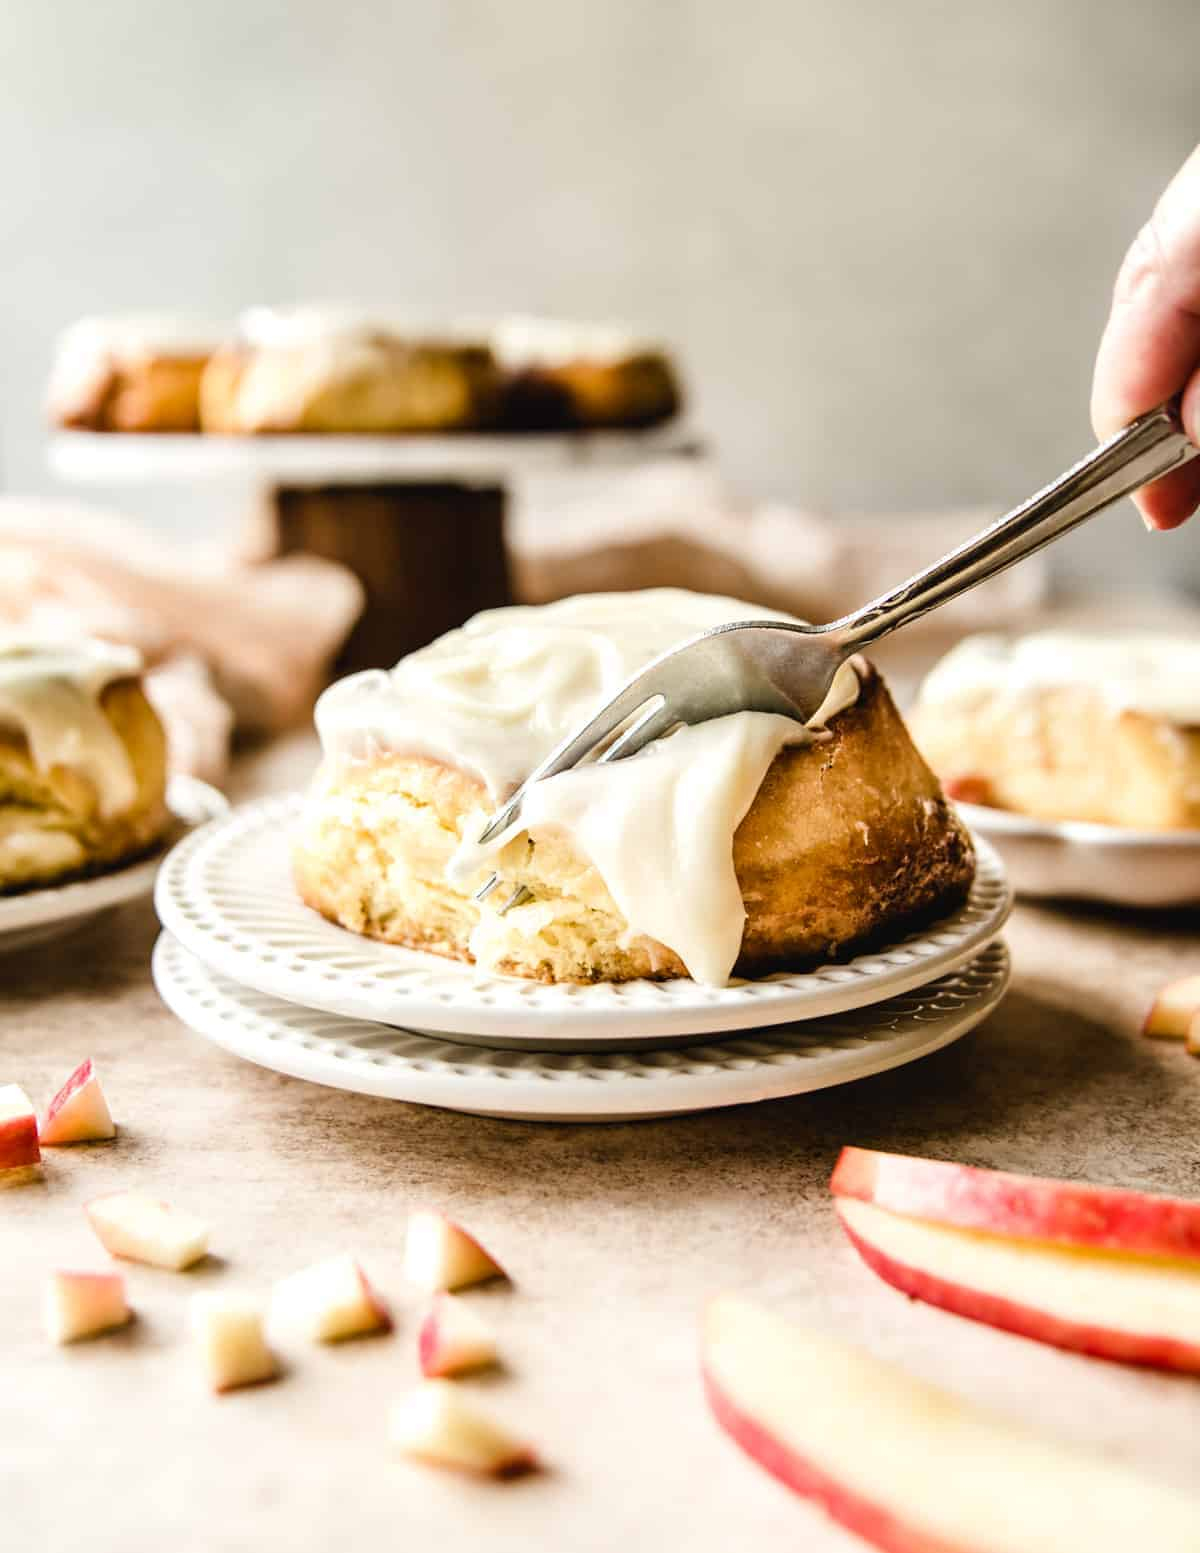 These apple pie cinnamon rolls are topped with a delicious cream cheese frosting.